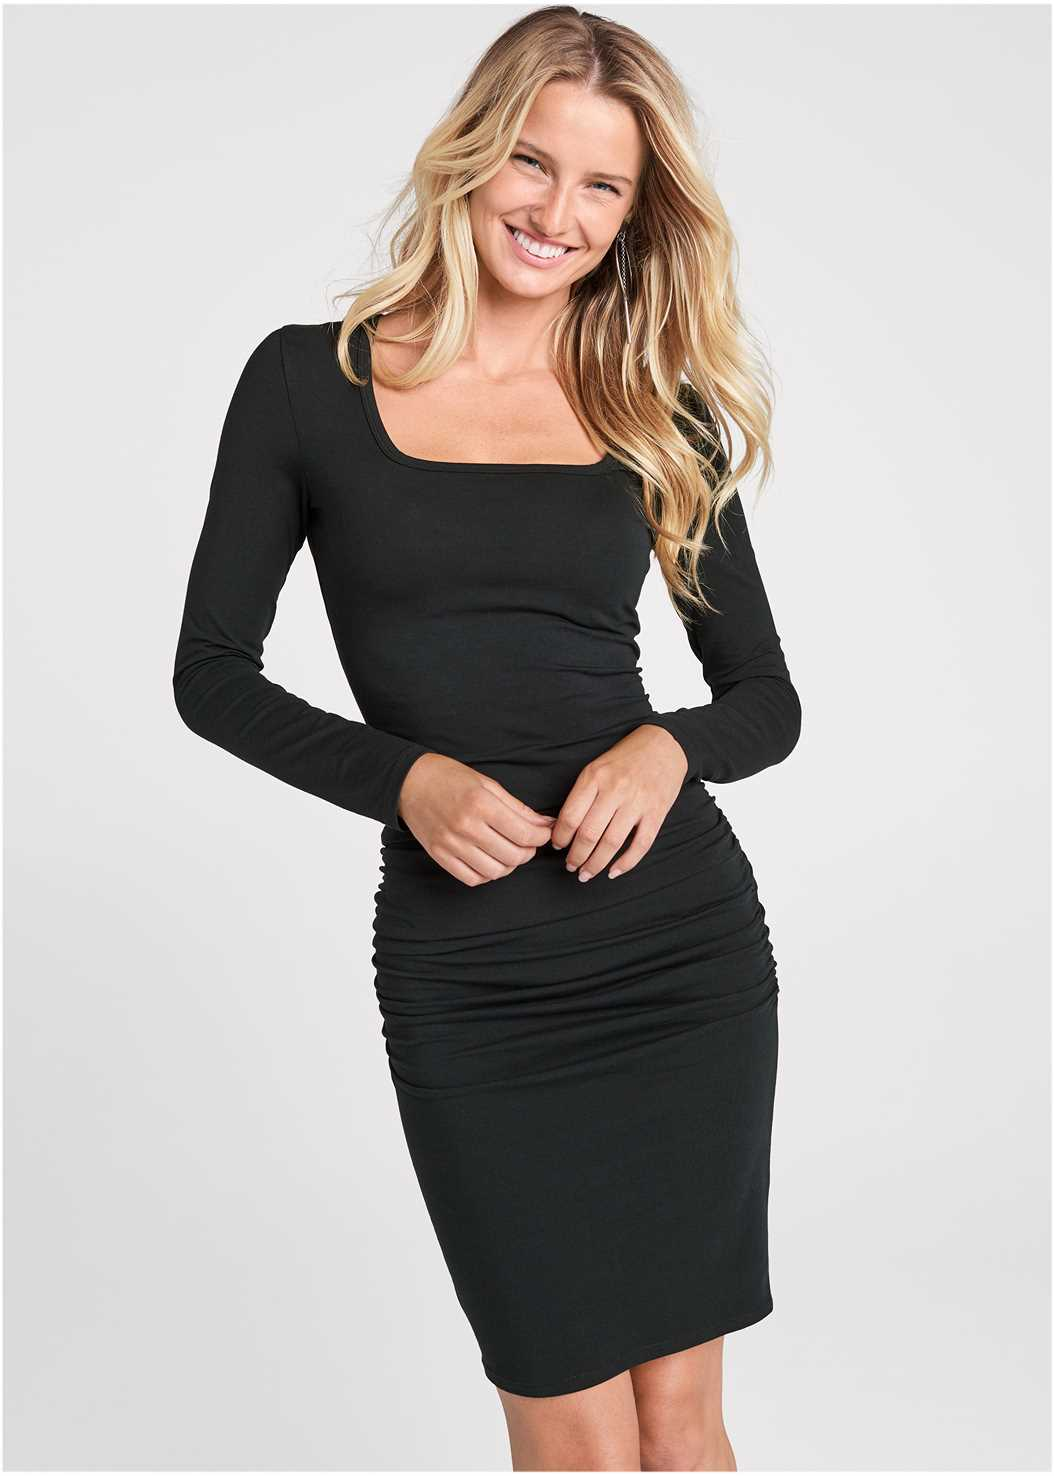 Ruched Long Sleeve Dress,Seamless Unlined Bra,Peep Toe Booties,Studded Handbag